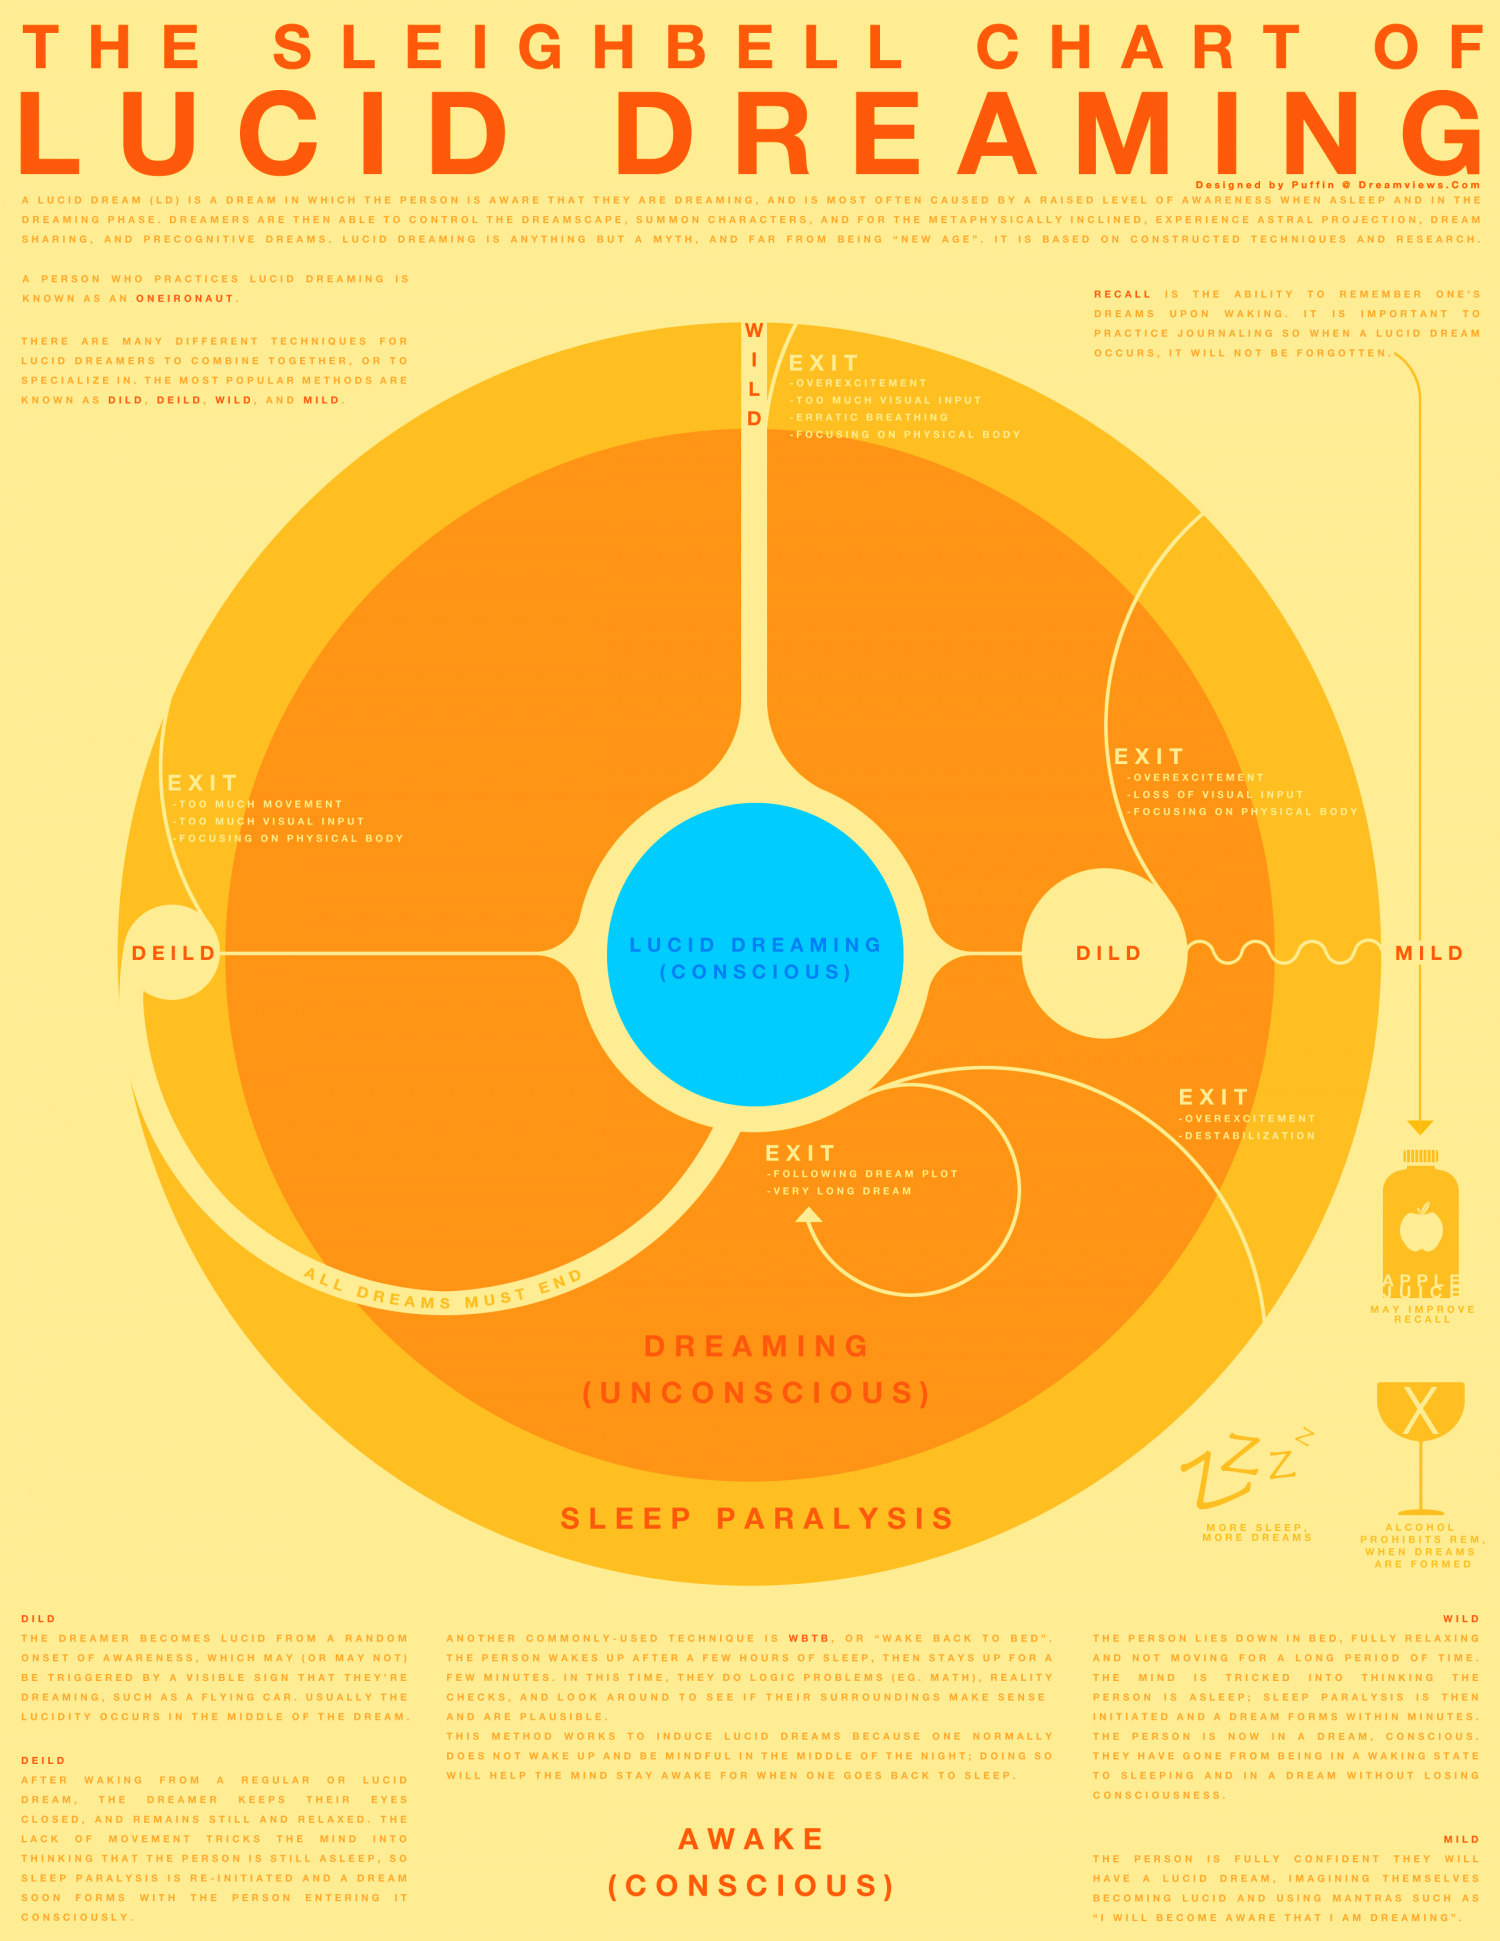 The Sleighbell Chart of Lucid Dreaming Infographic